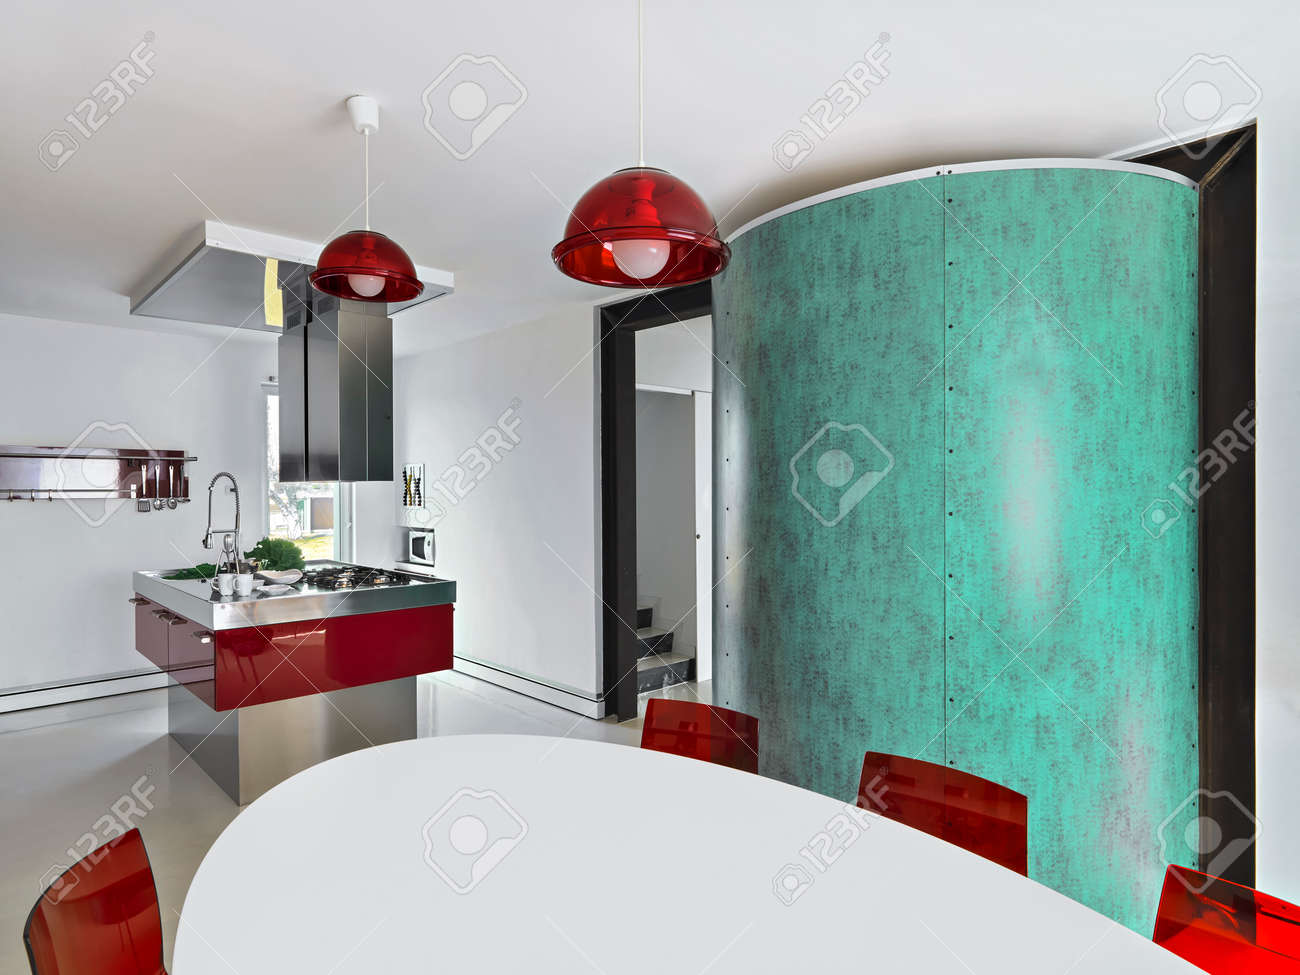 Interior View Of A Red Modern Kitchen With Kitchen Island And ...